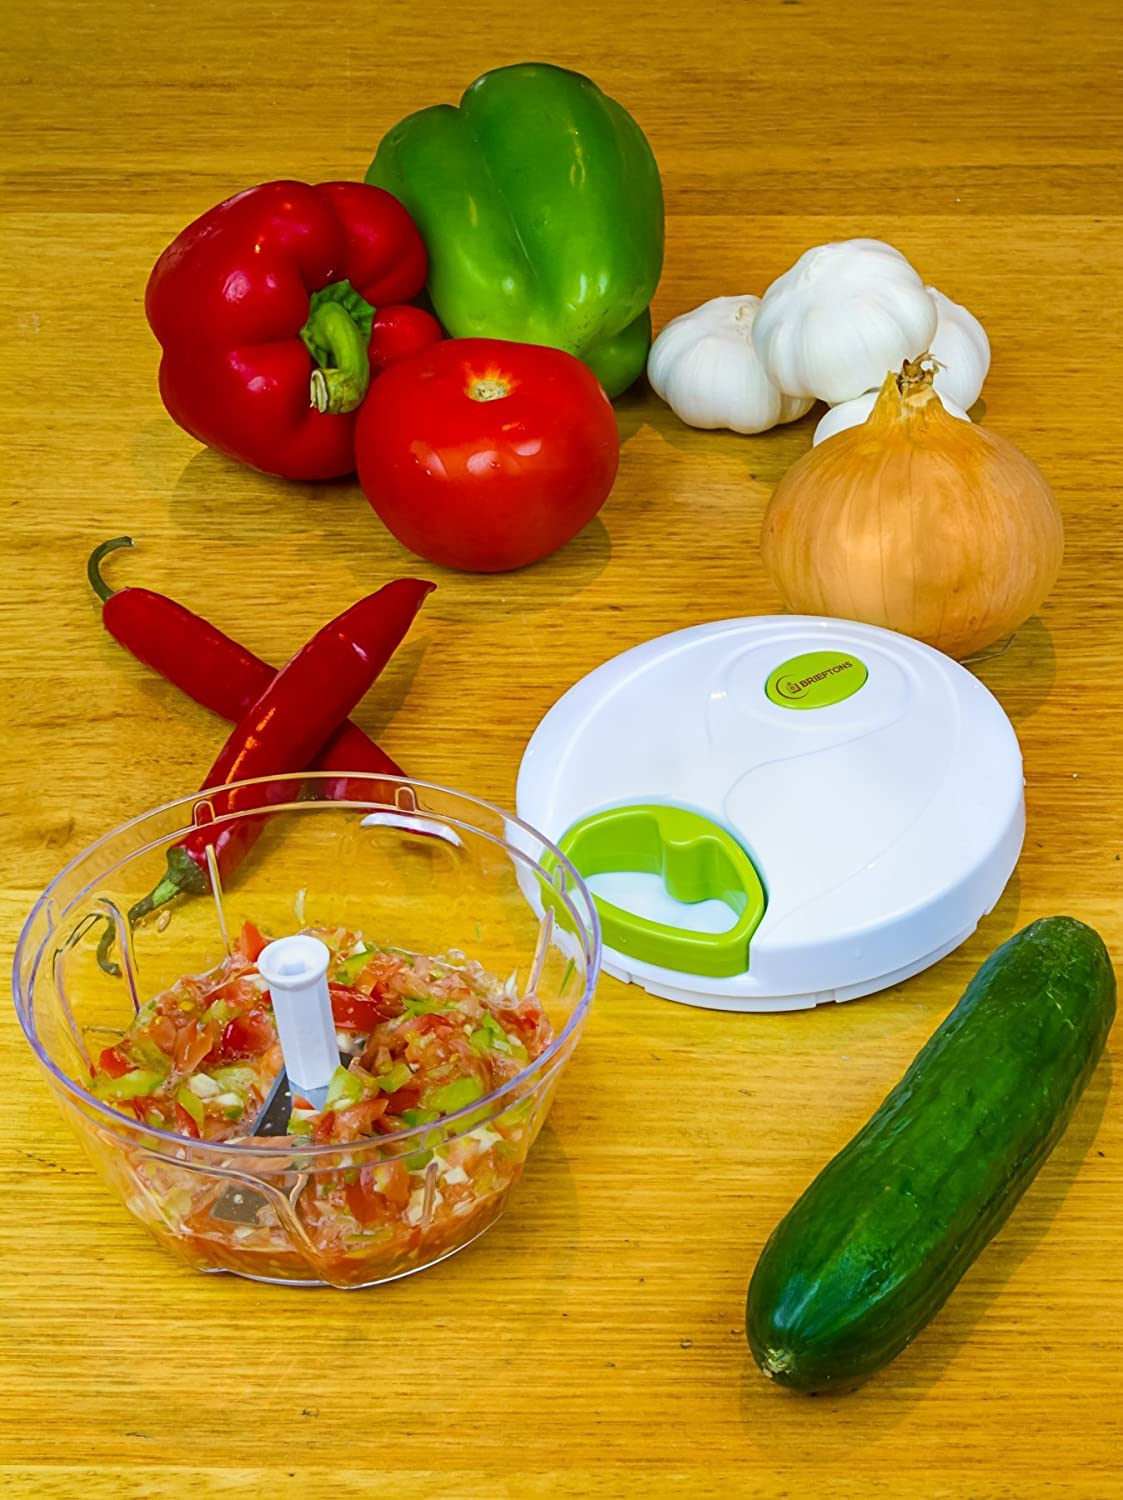 Brieftons Hand Held Vegetable Chopper to Chop Fruits, Nuts, Herbs, Onions, Garlic for Salsa, Salad, Pesto, Coleslaw, Puree